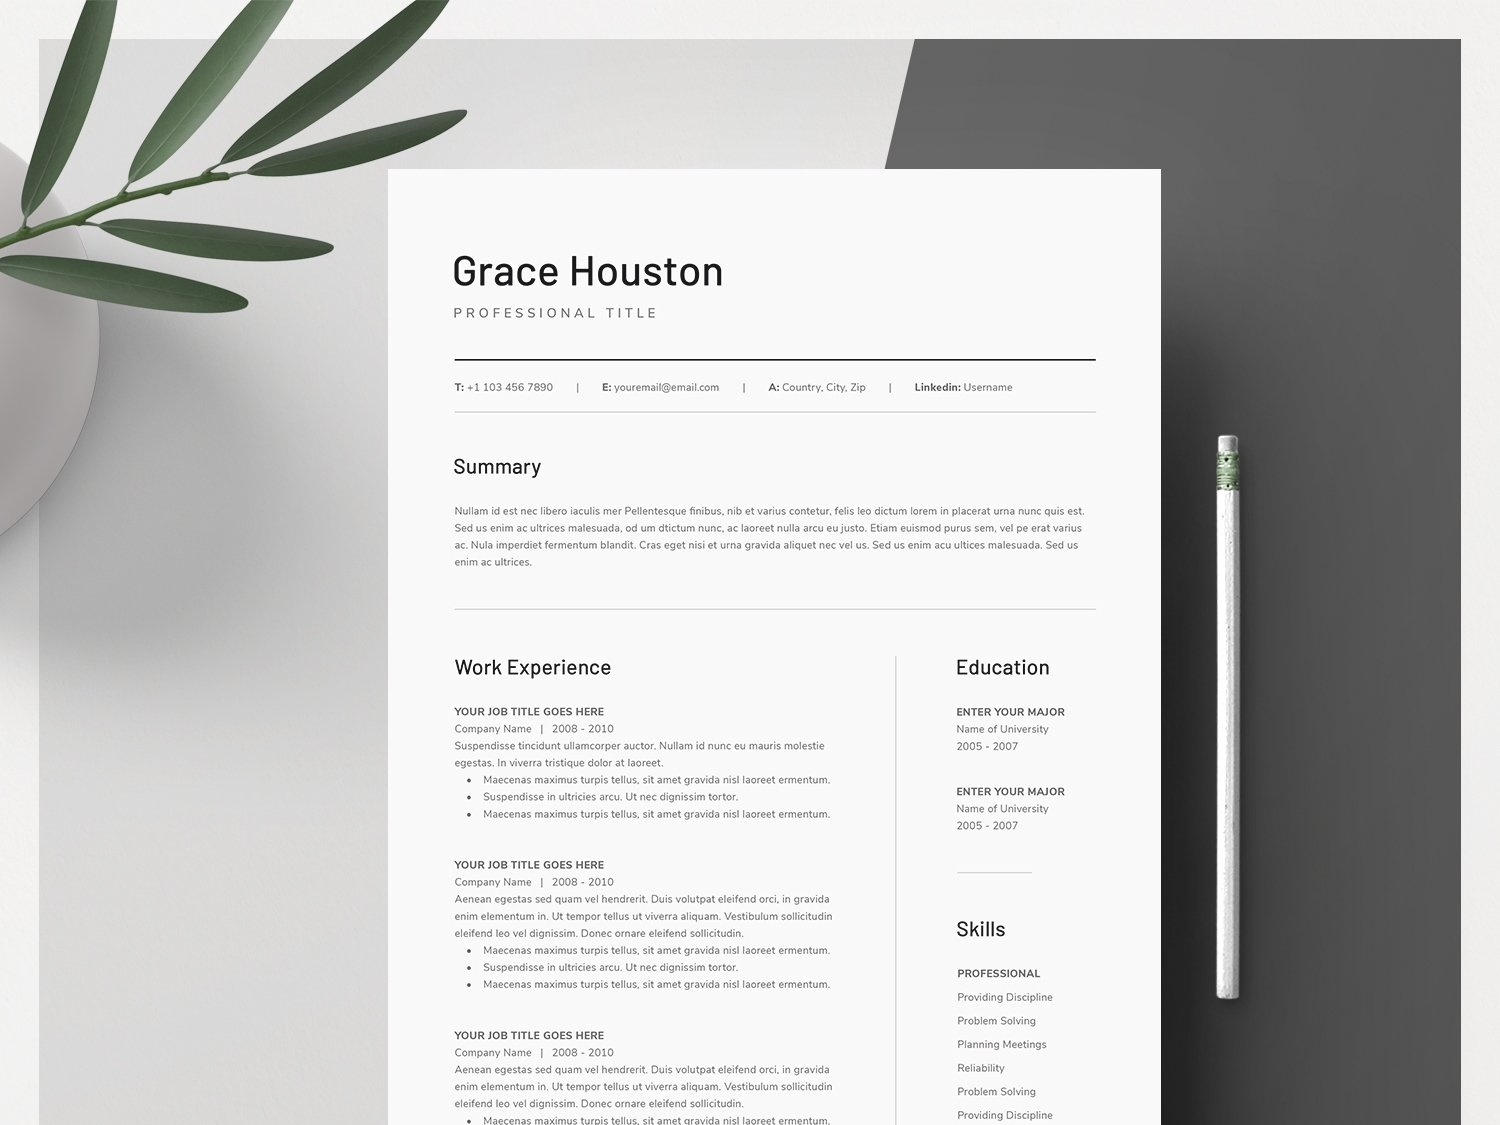 Word Resume & Cover Letter Template by Resume Templates on ...